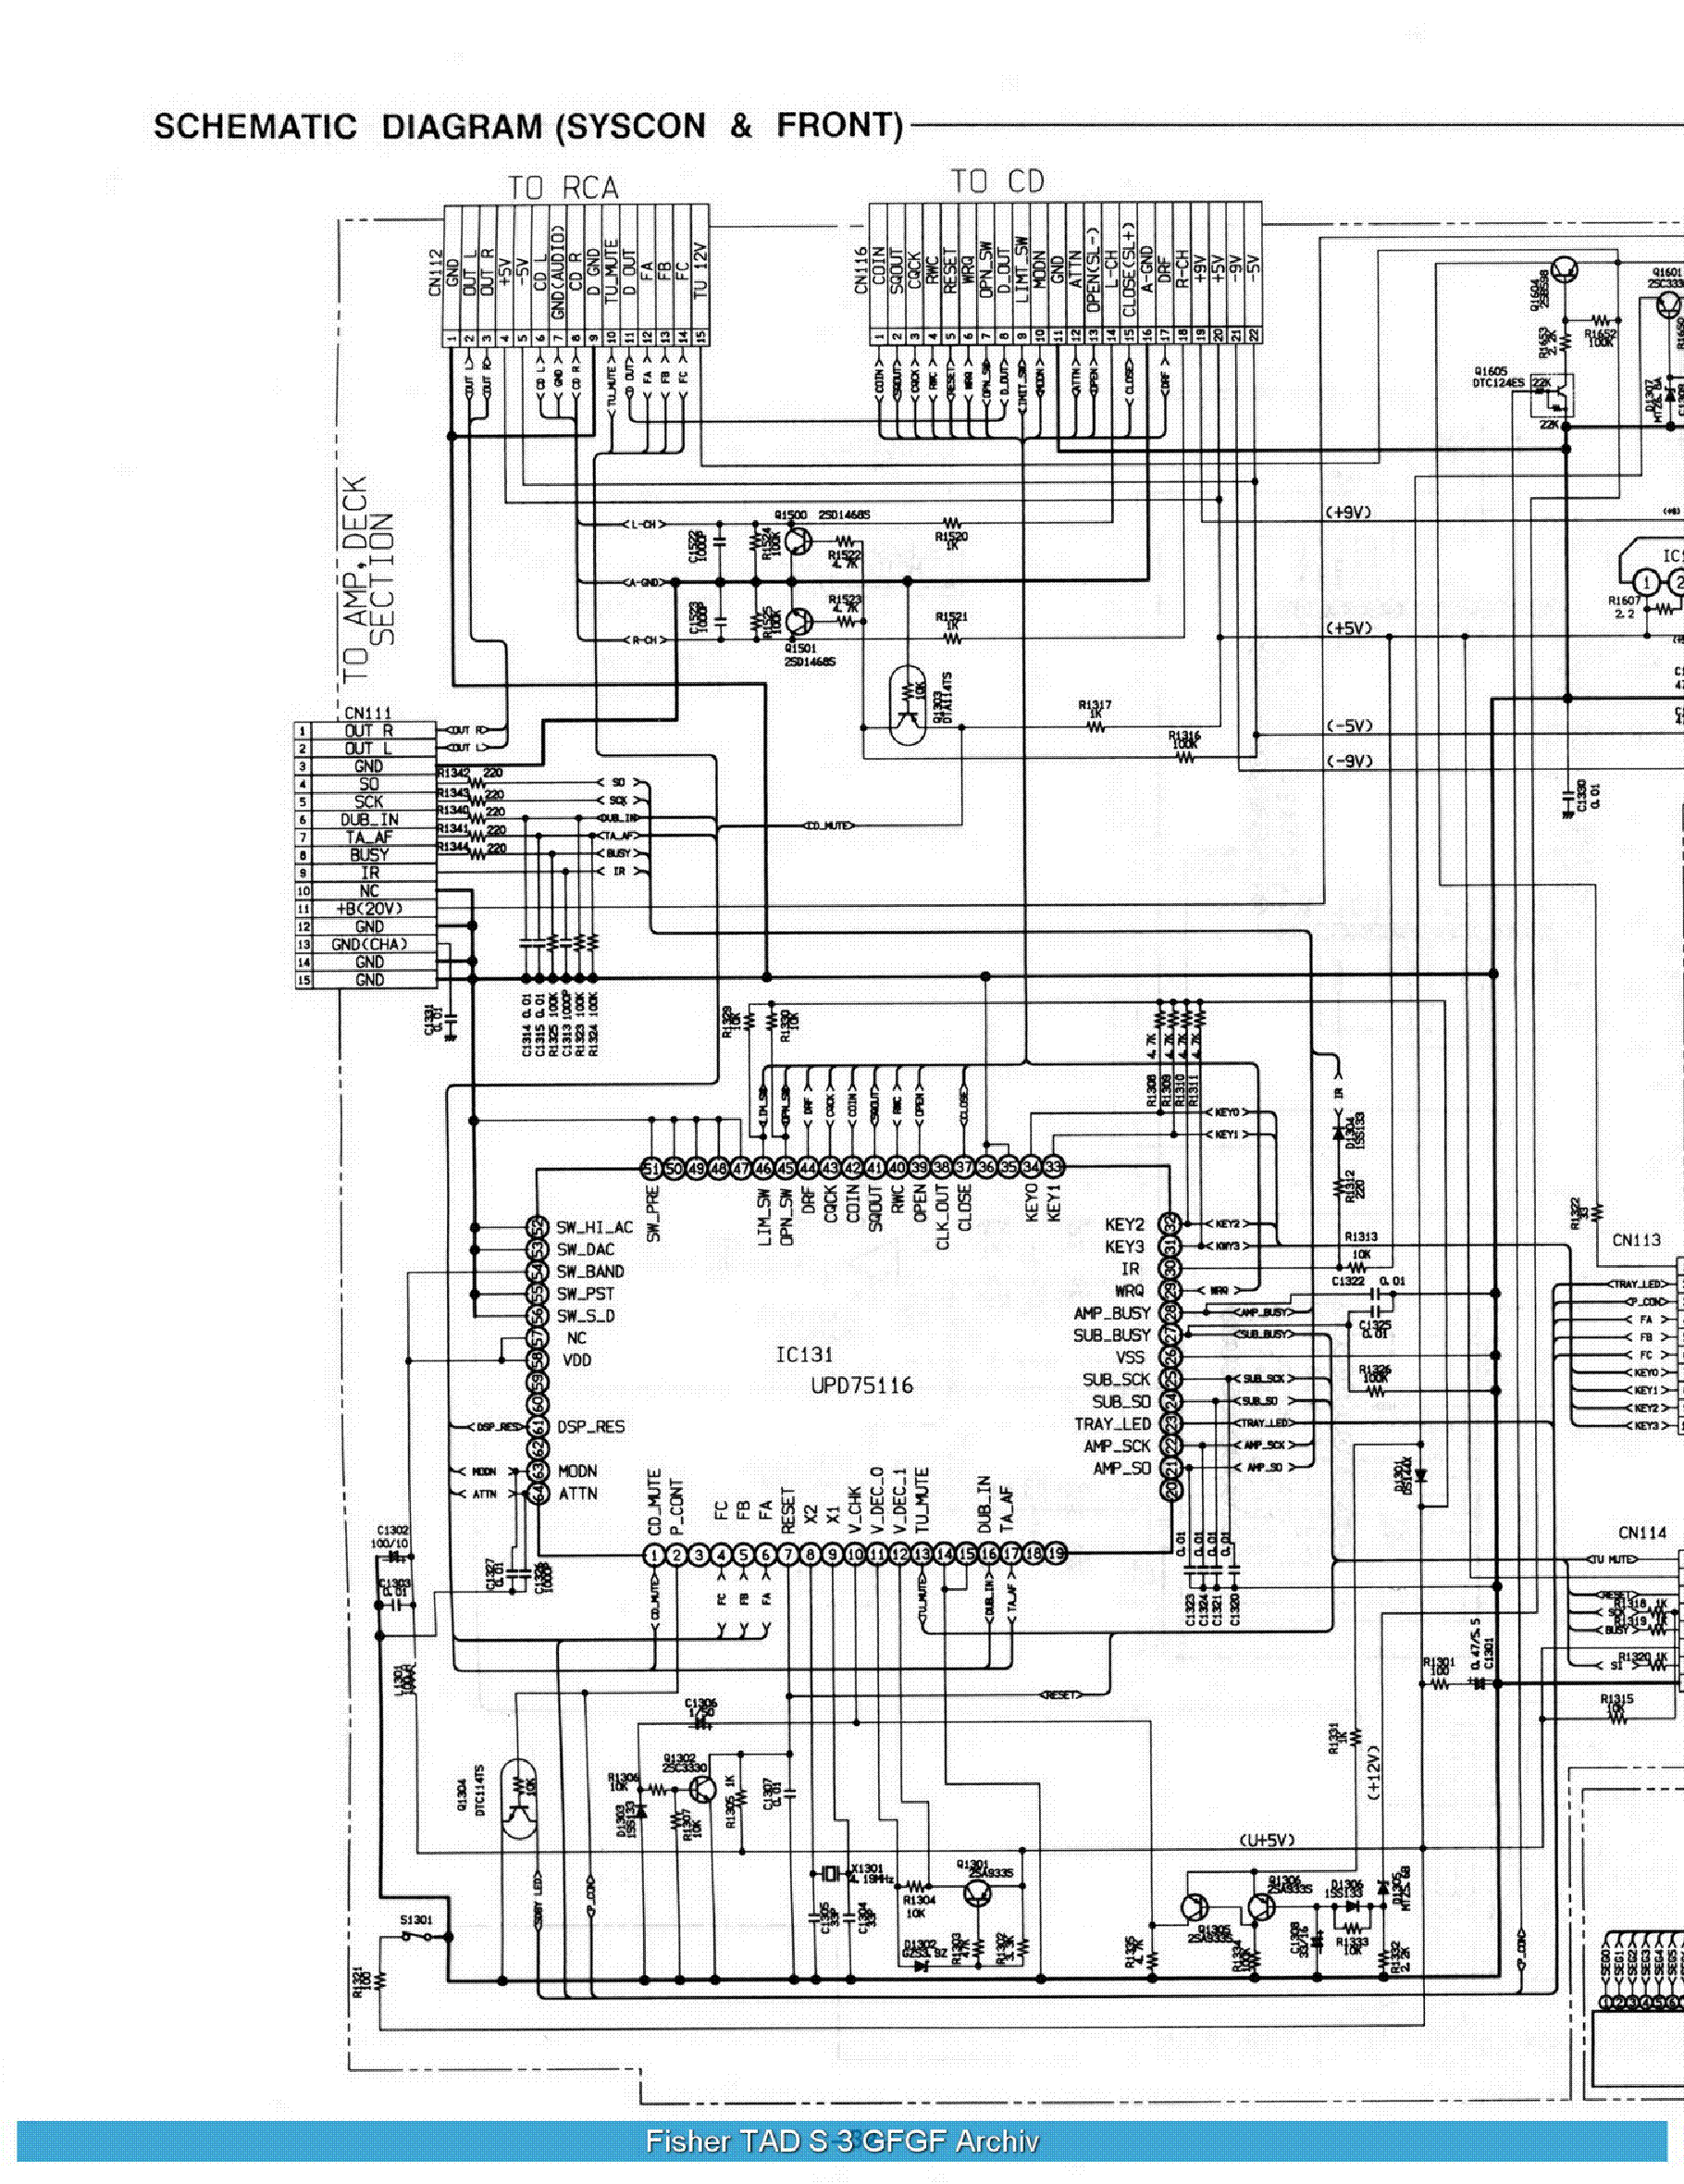 FISHER TAD S3 SCHEMATIC Service Manual download